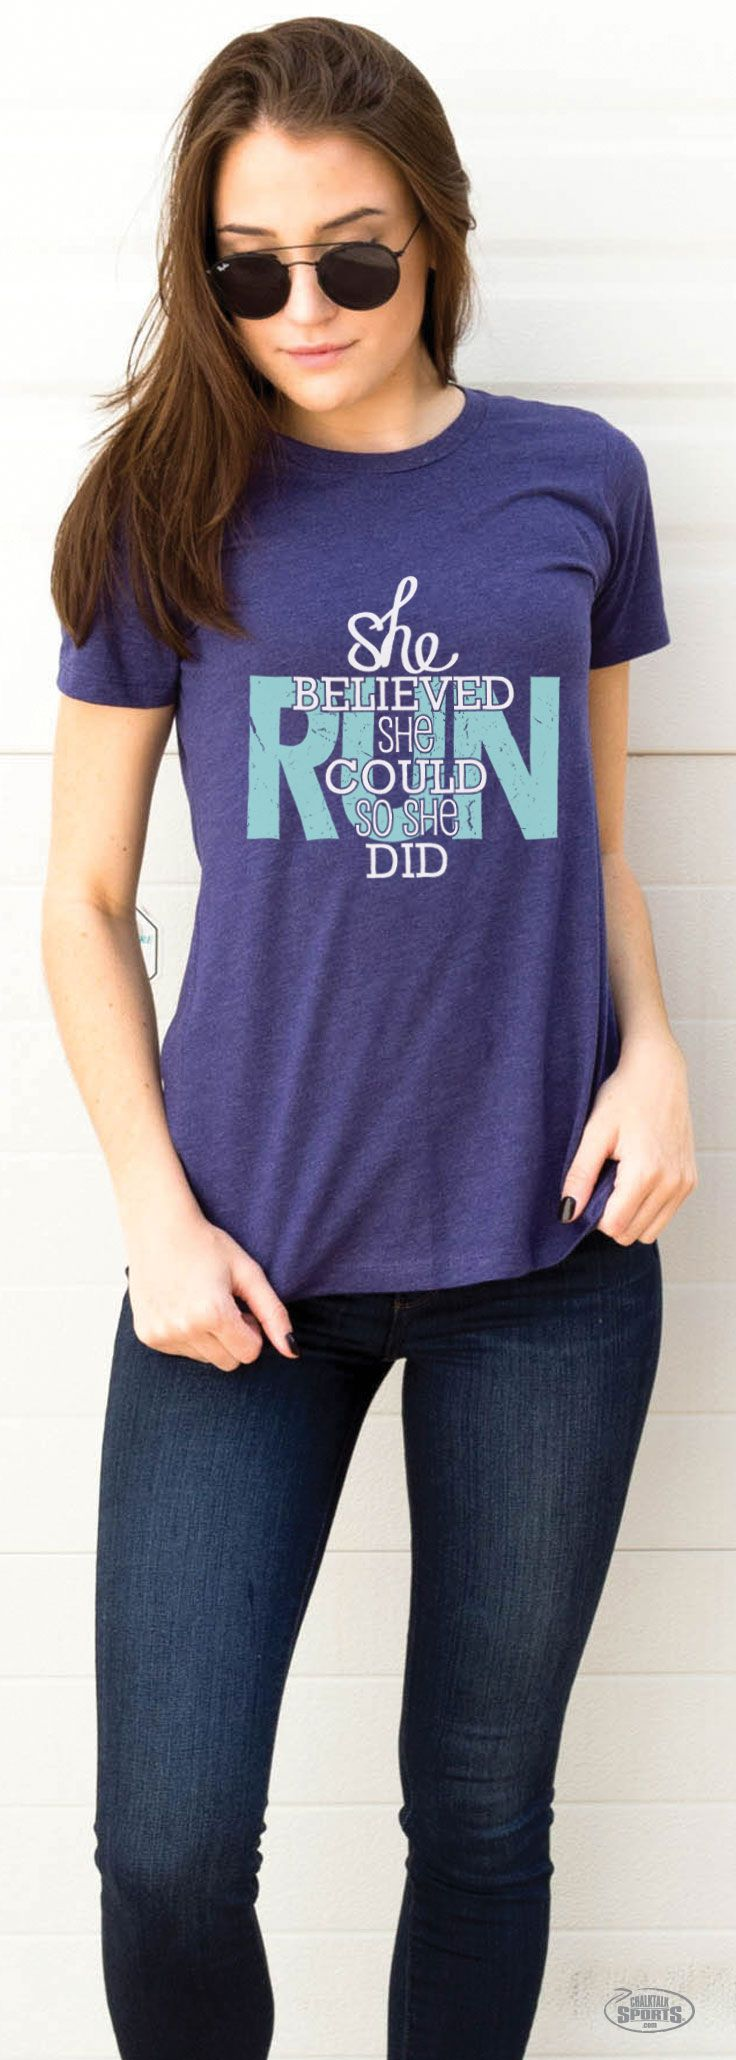 Every cross country runner knows that finding cool and breathable clothing is very important. This t shirt not only is that, but the message on the shirt is important to keep in a state of mind. You can do anything!!